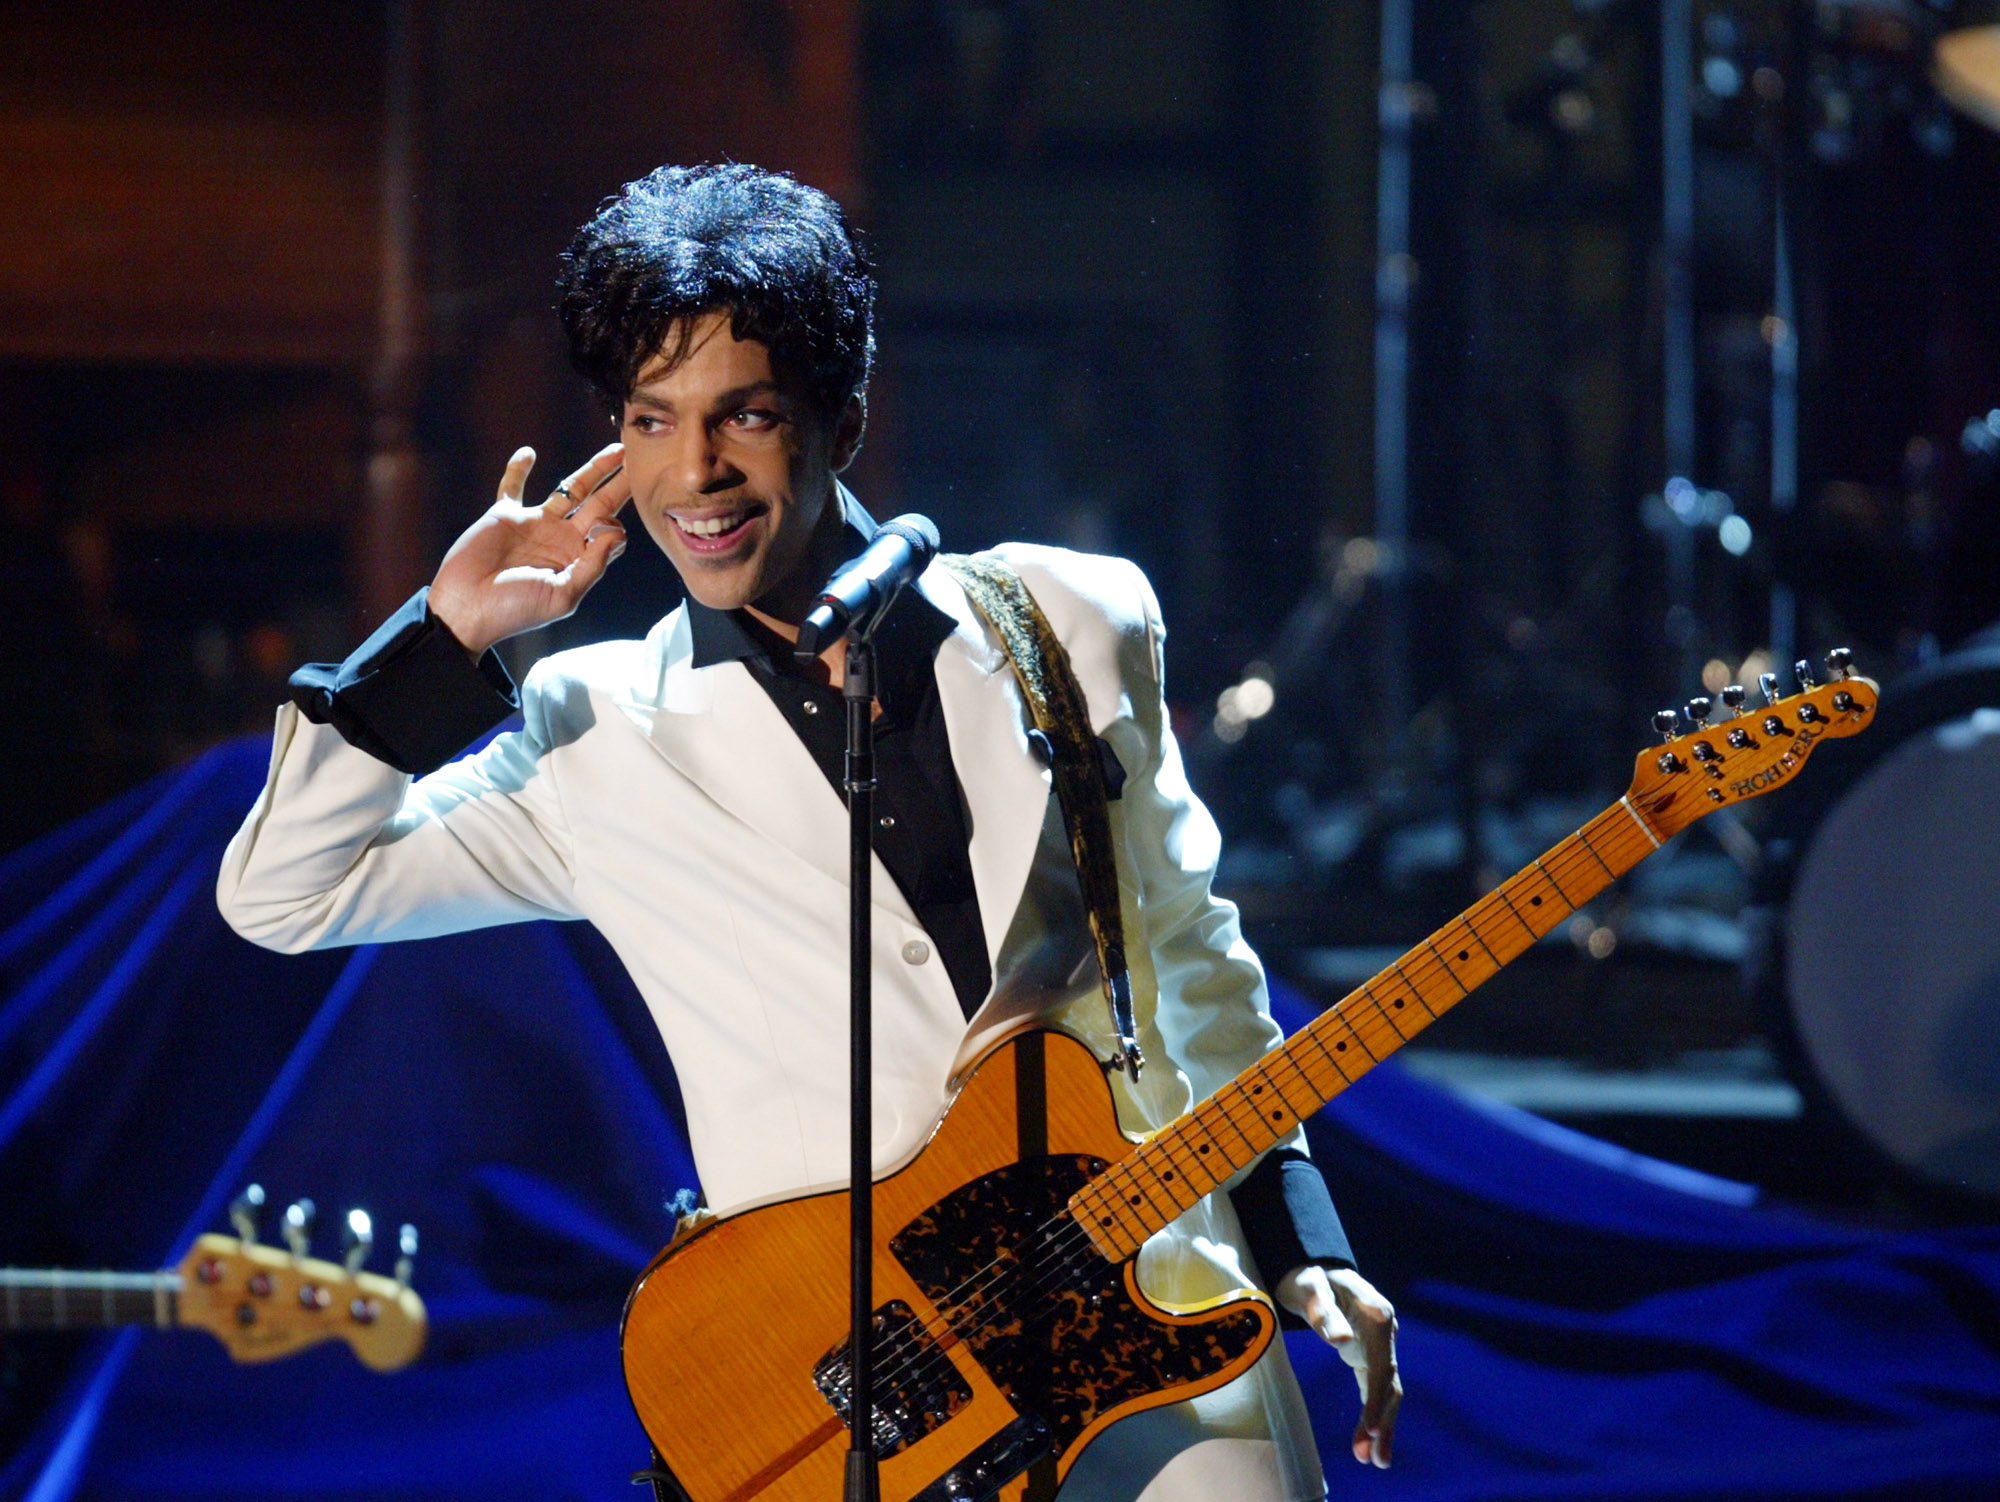 Prince performs at the19th annual Rock and Roll Hall of Fame induction ceremony, Monday, March 15, 2004.  (AP Photo/Wireimage.com, Kevin Mazur/FILE